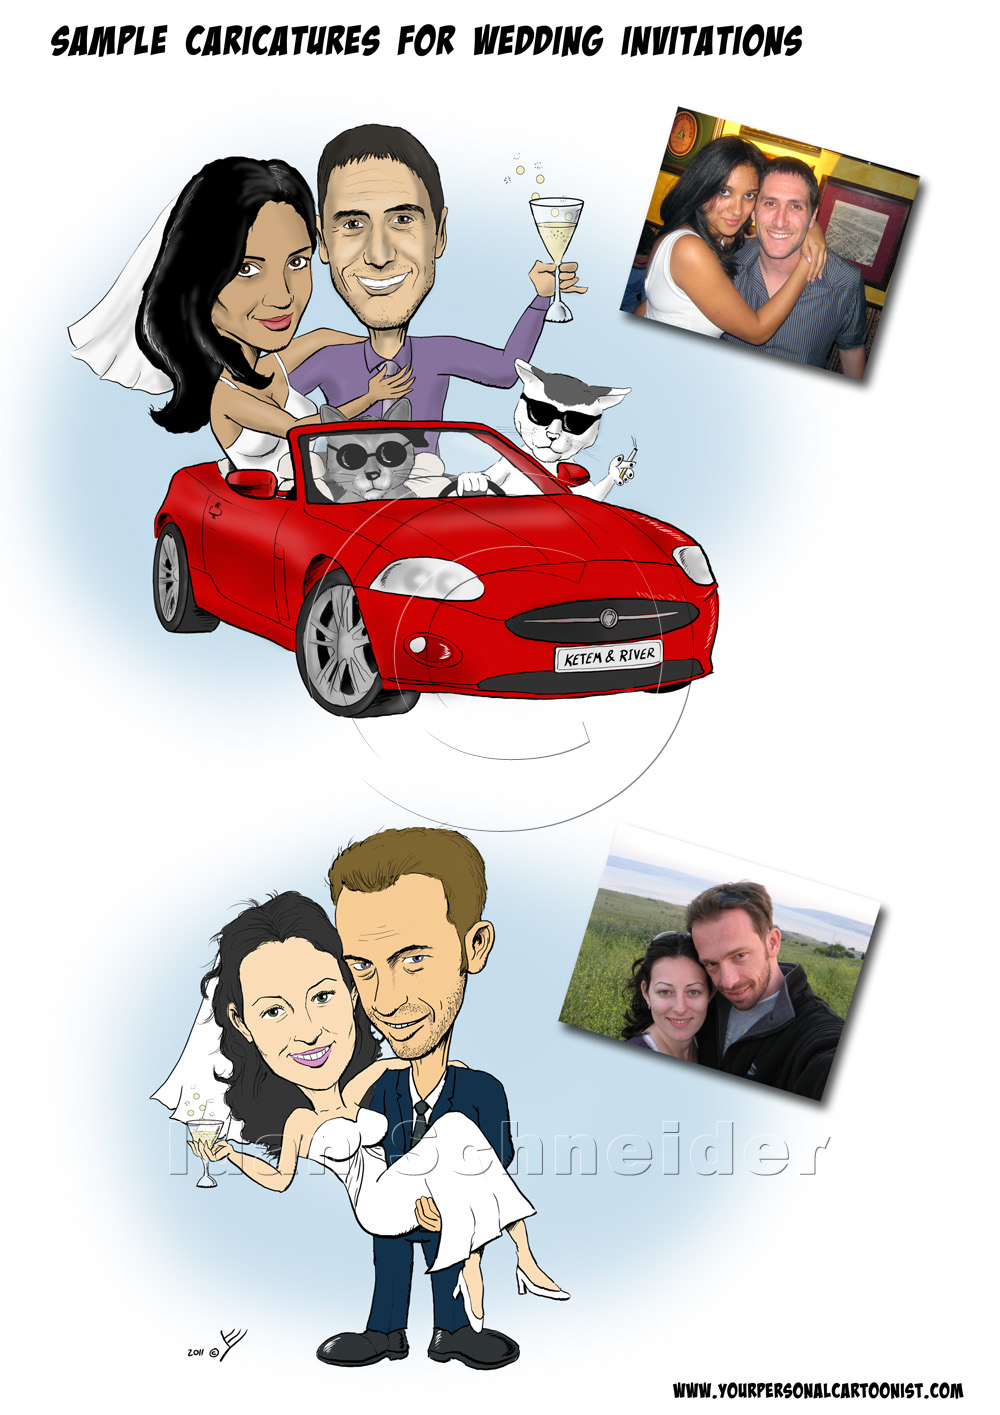 caricatures for wedding invitations your personal cartoonist - 28 ...